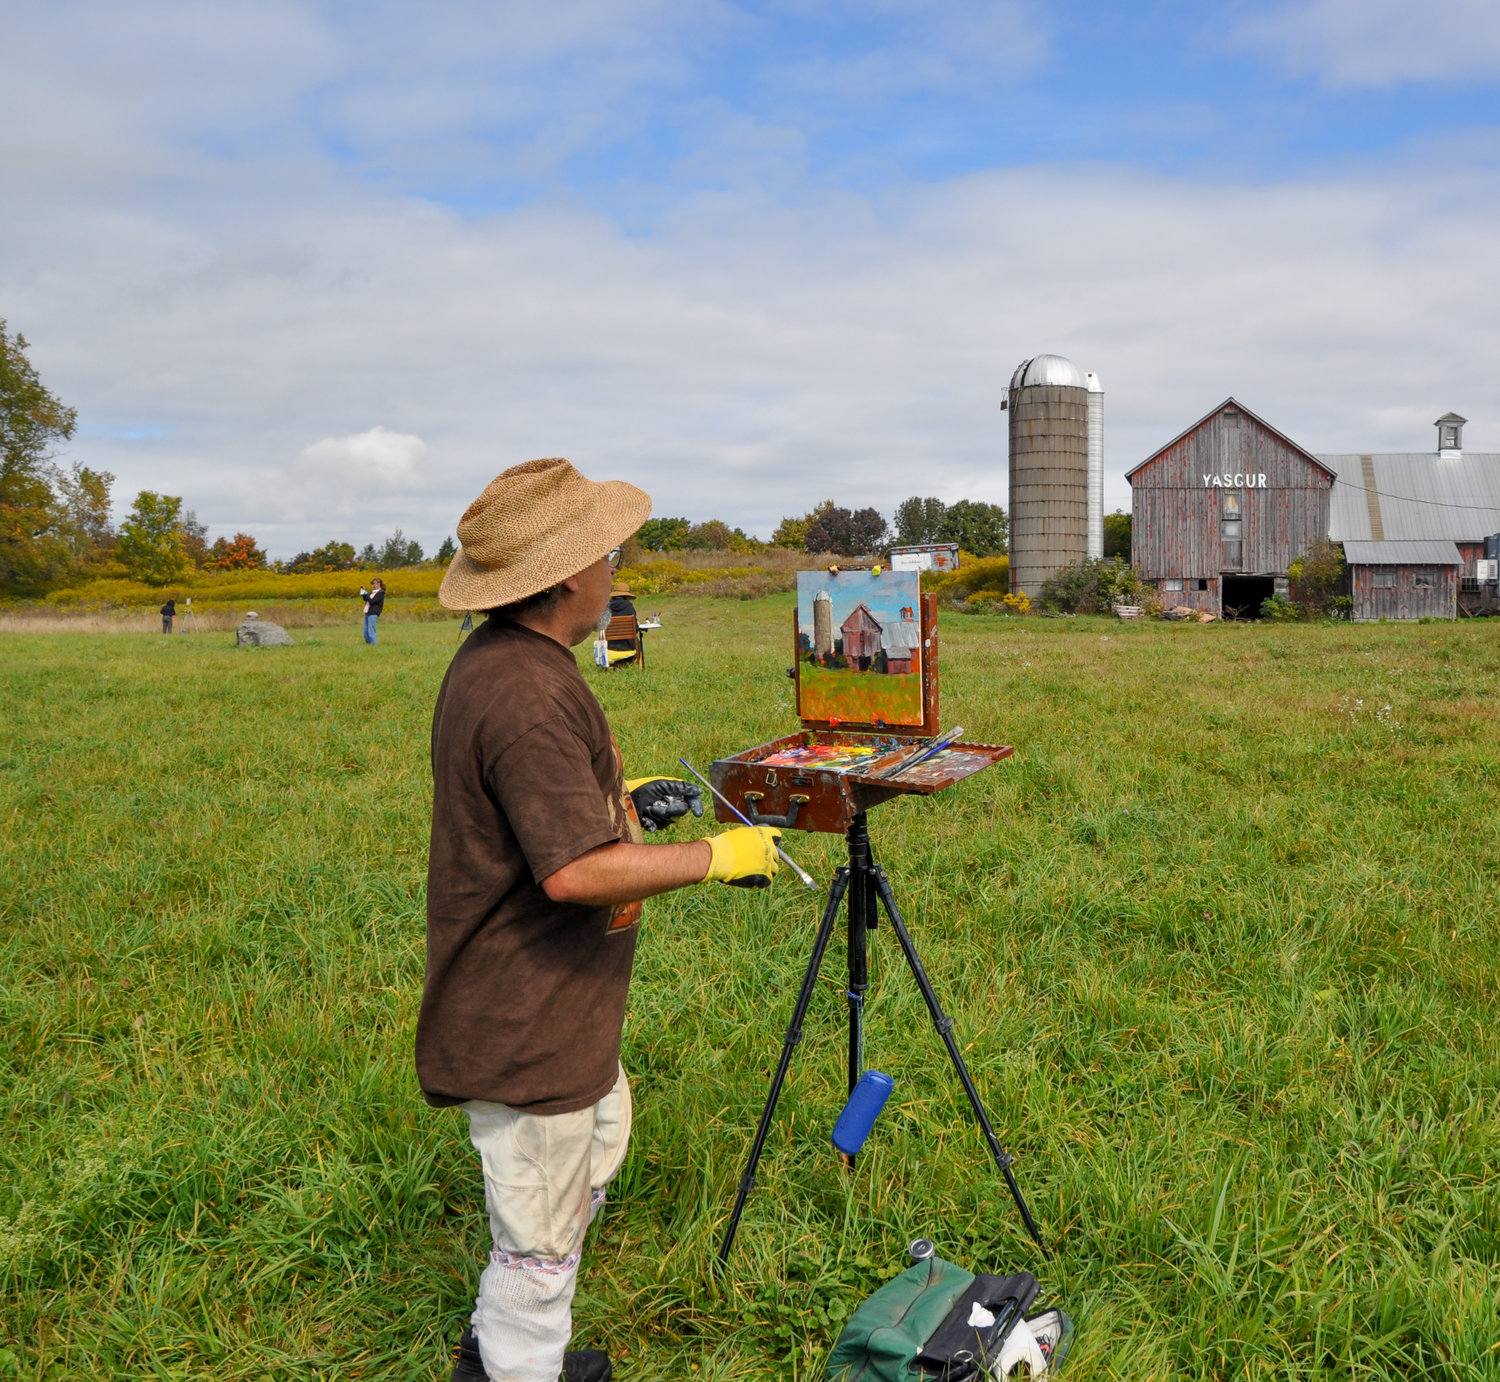 Painter Jay Brooks was one of several artists in the fields of Max Yasgur's old homestead, wedding art and history last weekend in Bethel, NY.